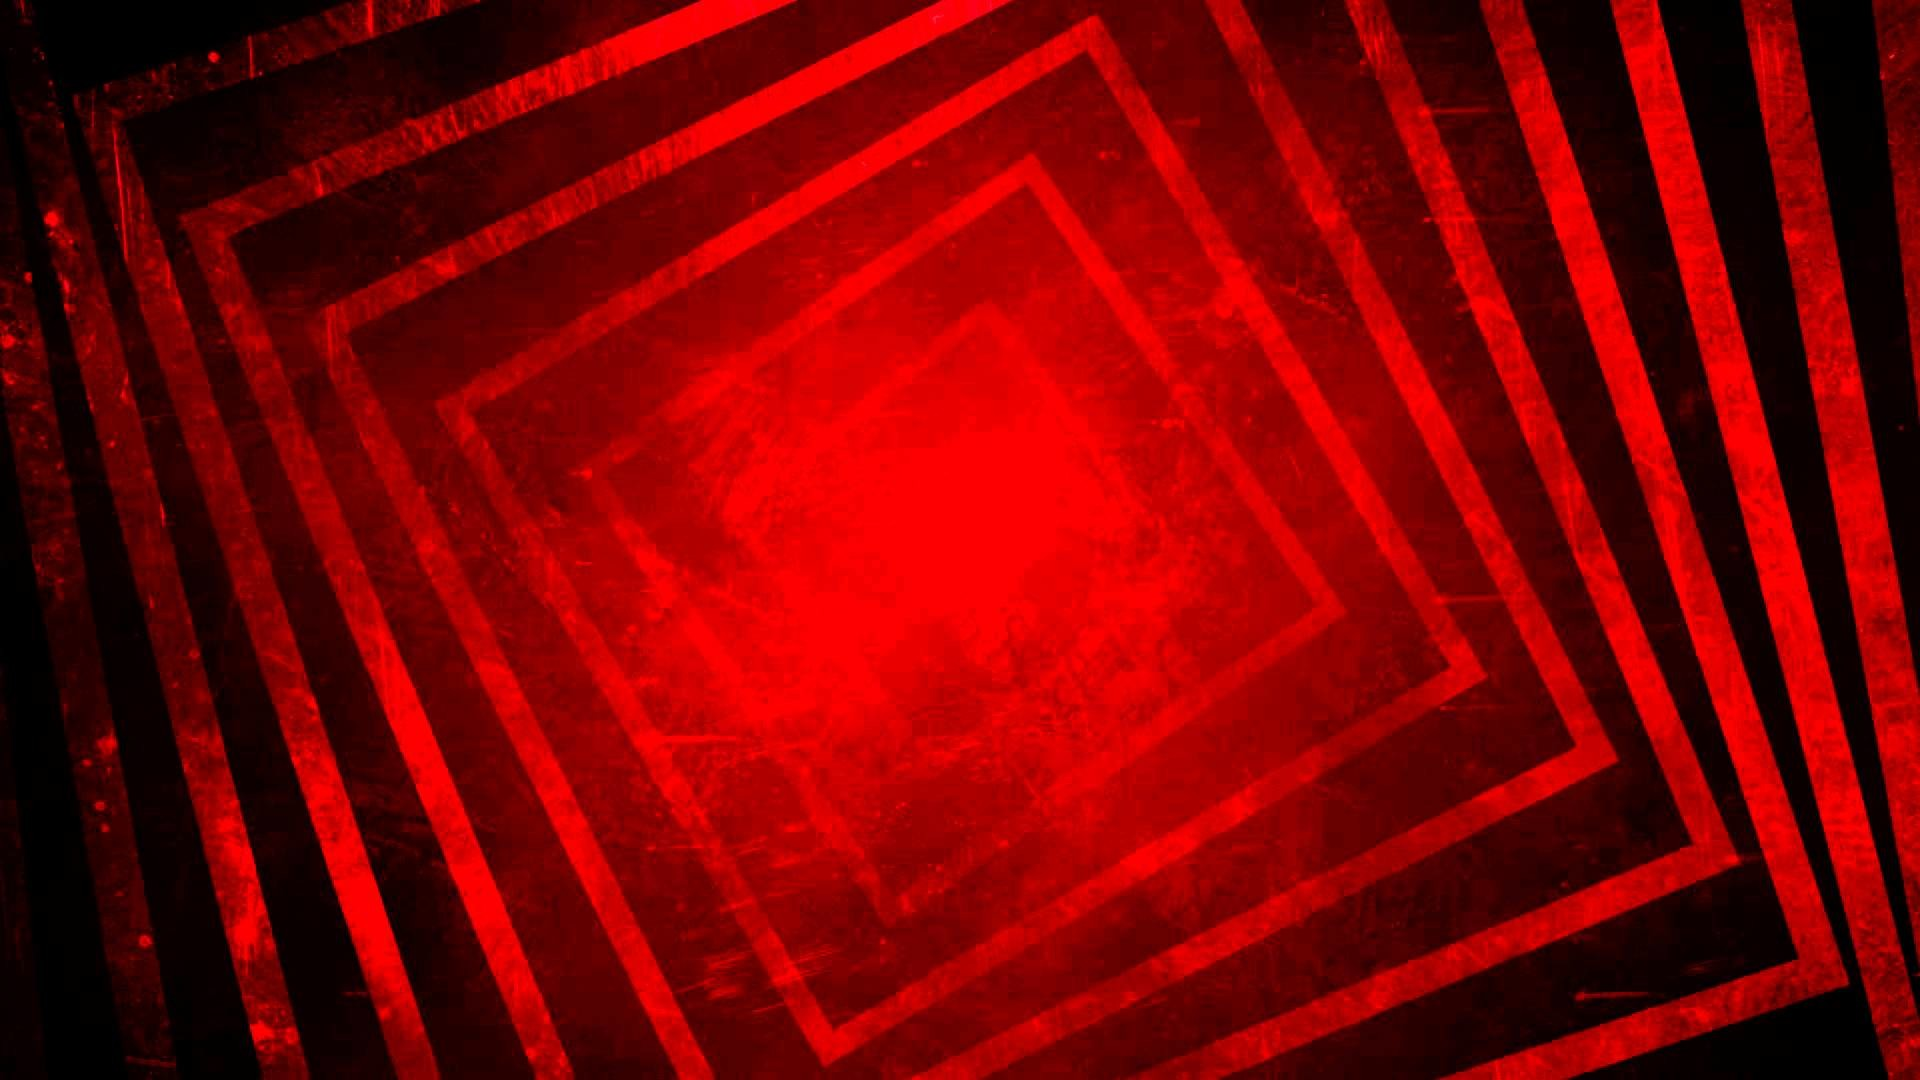 red background pictures 53 images